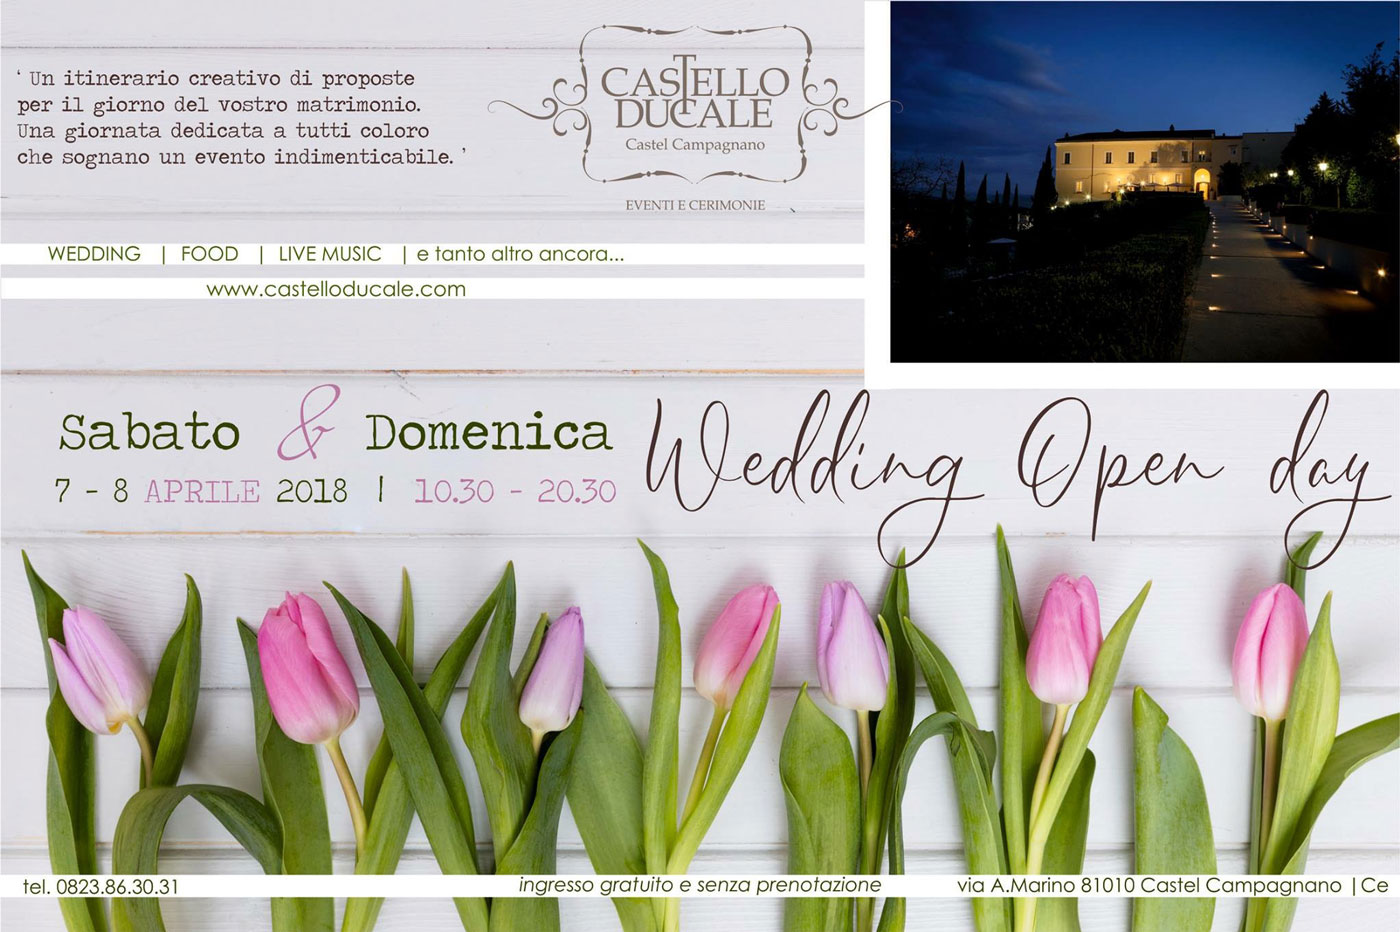 matrimonio 2018: nuove tendenze all'Wedding Open Day di Castello Ducale 7 e 8 aprile 2018